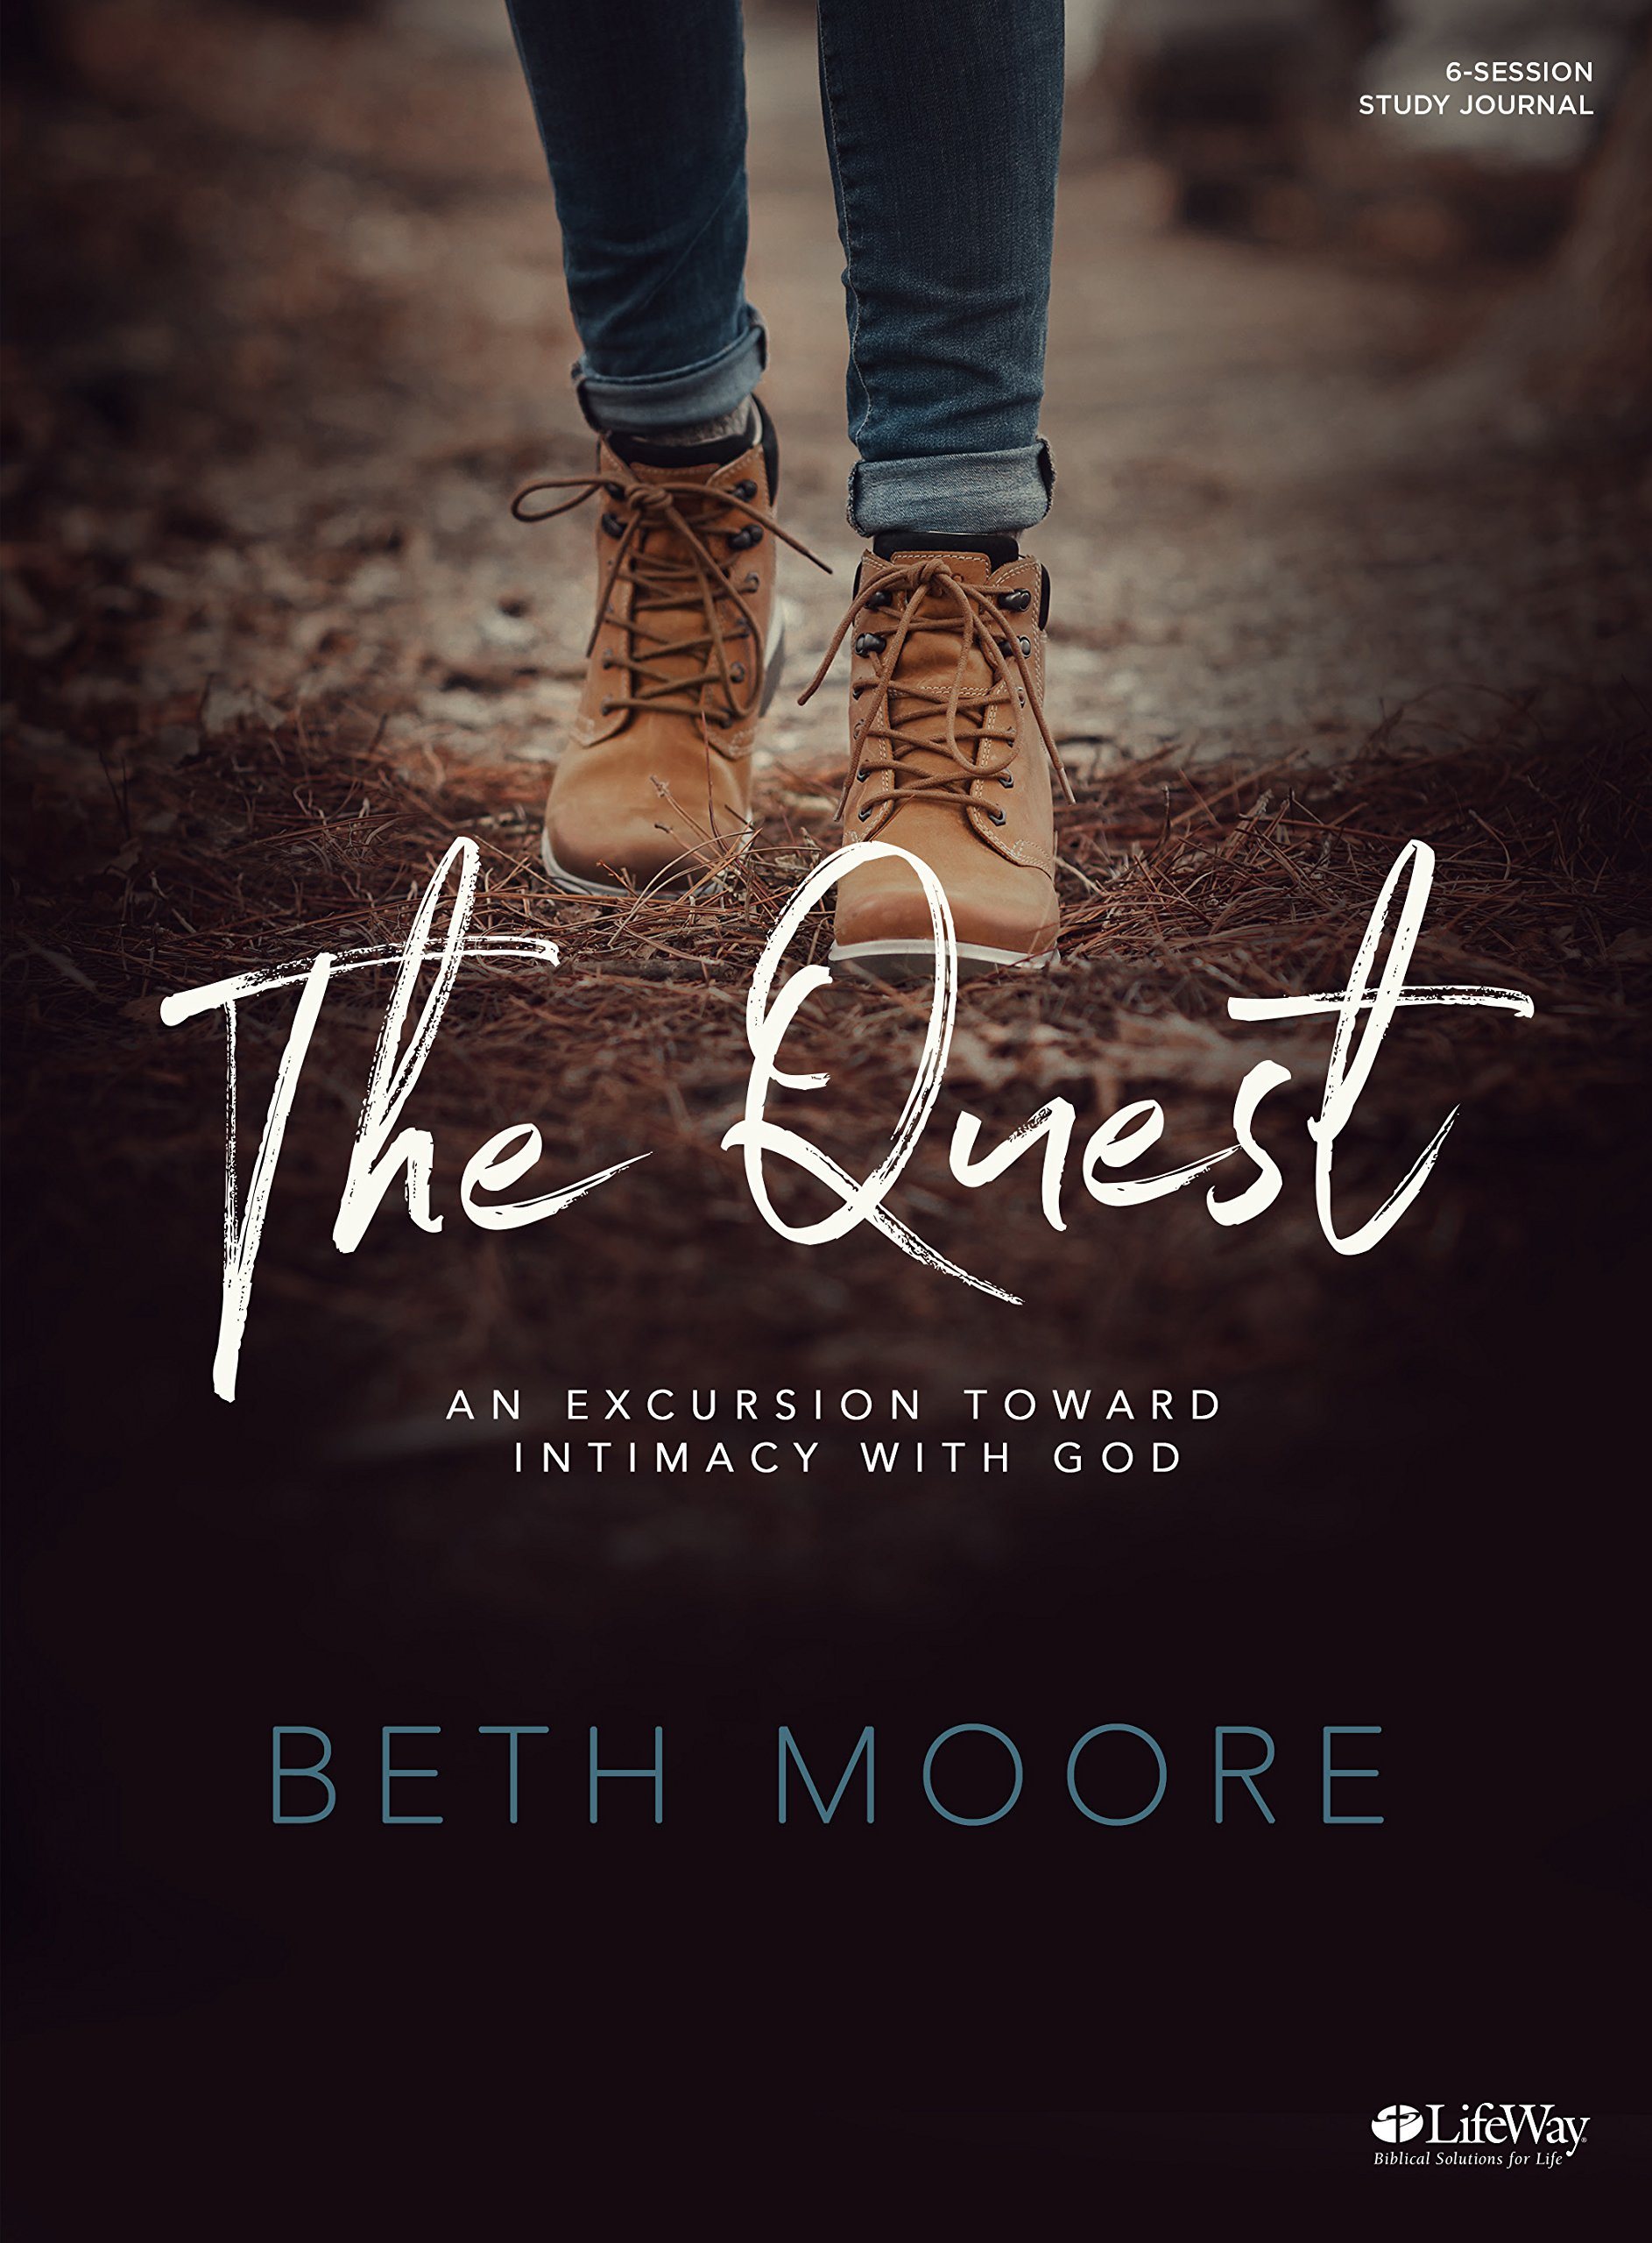 The Quest - Study Journal: An Excursion Toward Intimacy with God by LifeWay Press